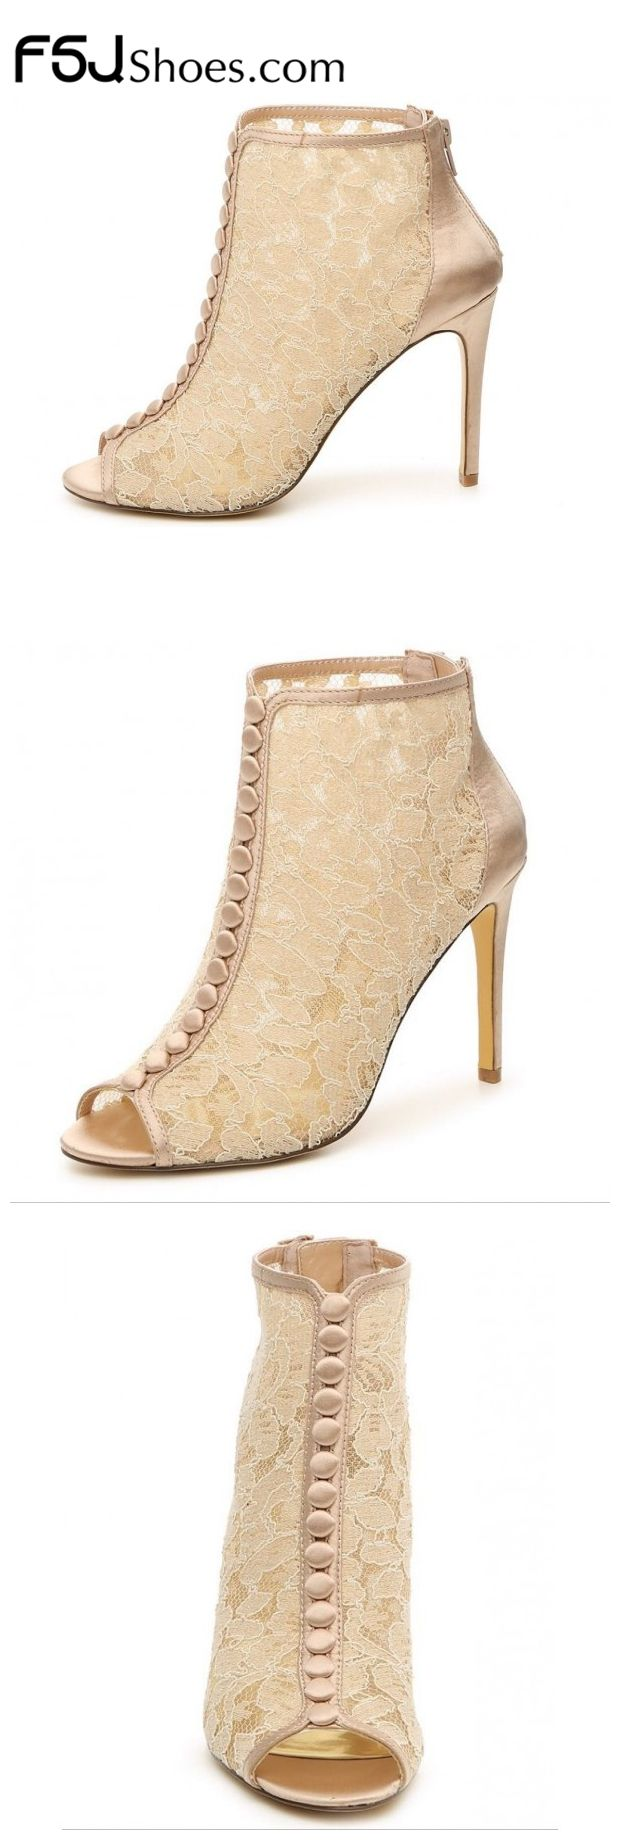 Women's Fall and Winter Fashion Ankle Booties Fall Fashion 2017 Women's Beige Lace Peep Toe Stiletto Heels Ankle Boots Fall Wedding Dresses Shoes Holiday Party Outfit Women Edgy Wedding Dresses Shoes Mermaid Wedding Dress Heels|FSJ